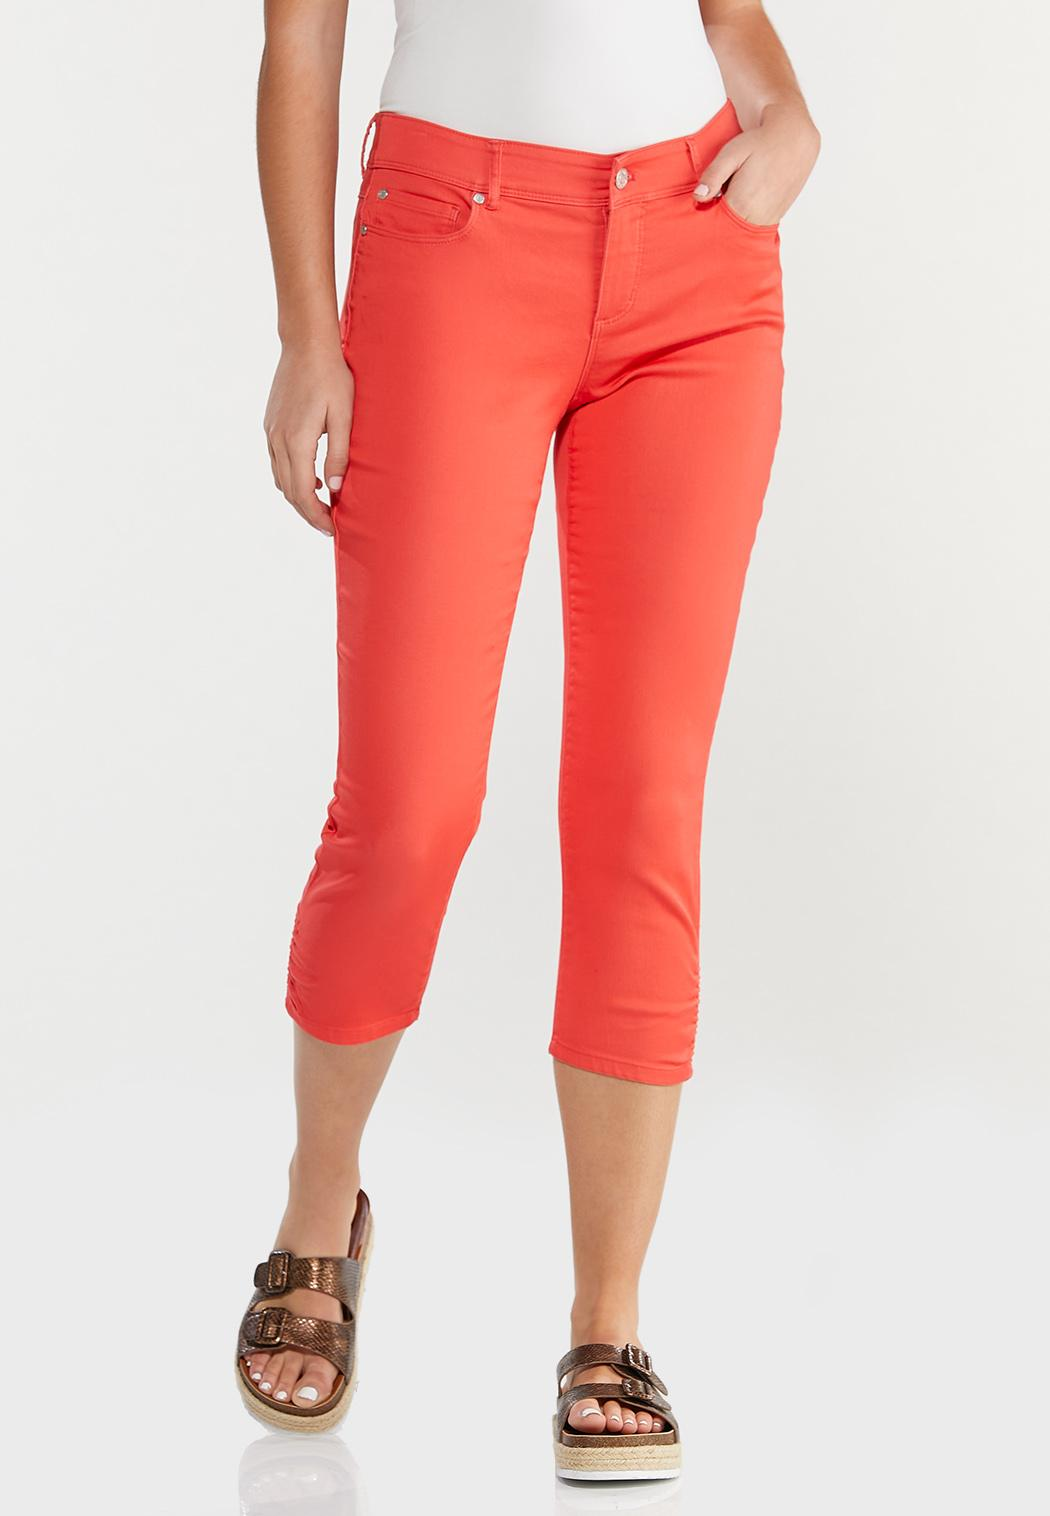 Cropped Ruched Colored Jeans